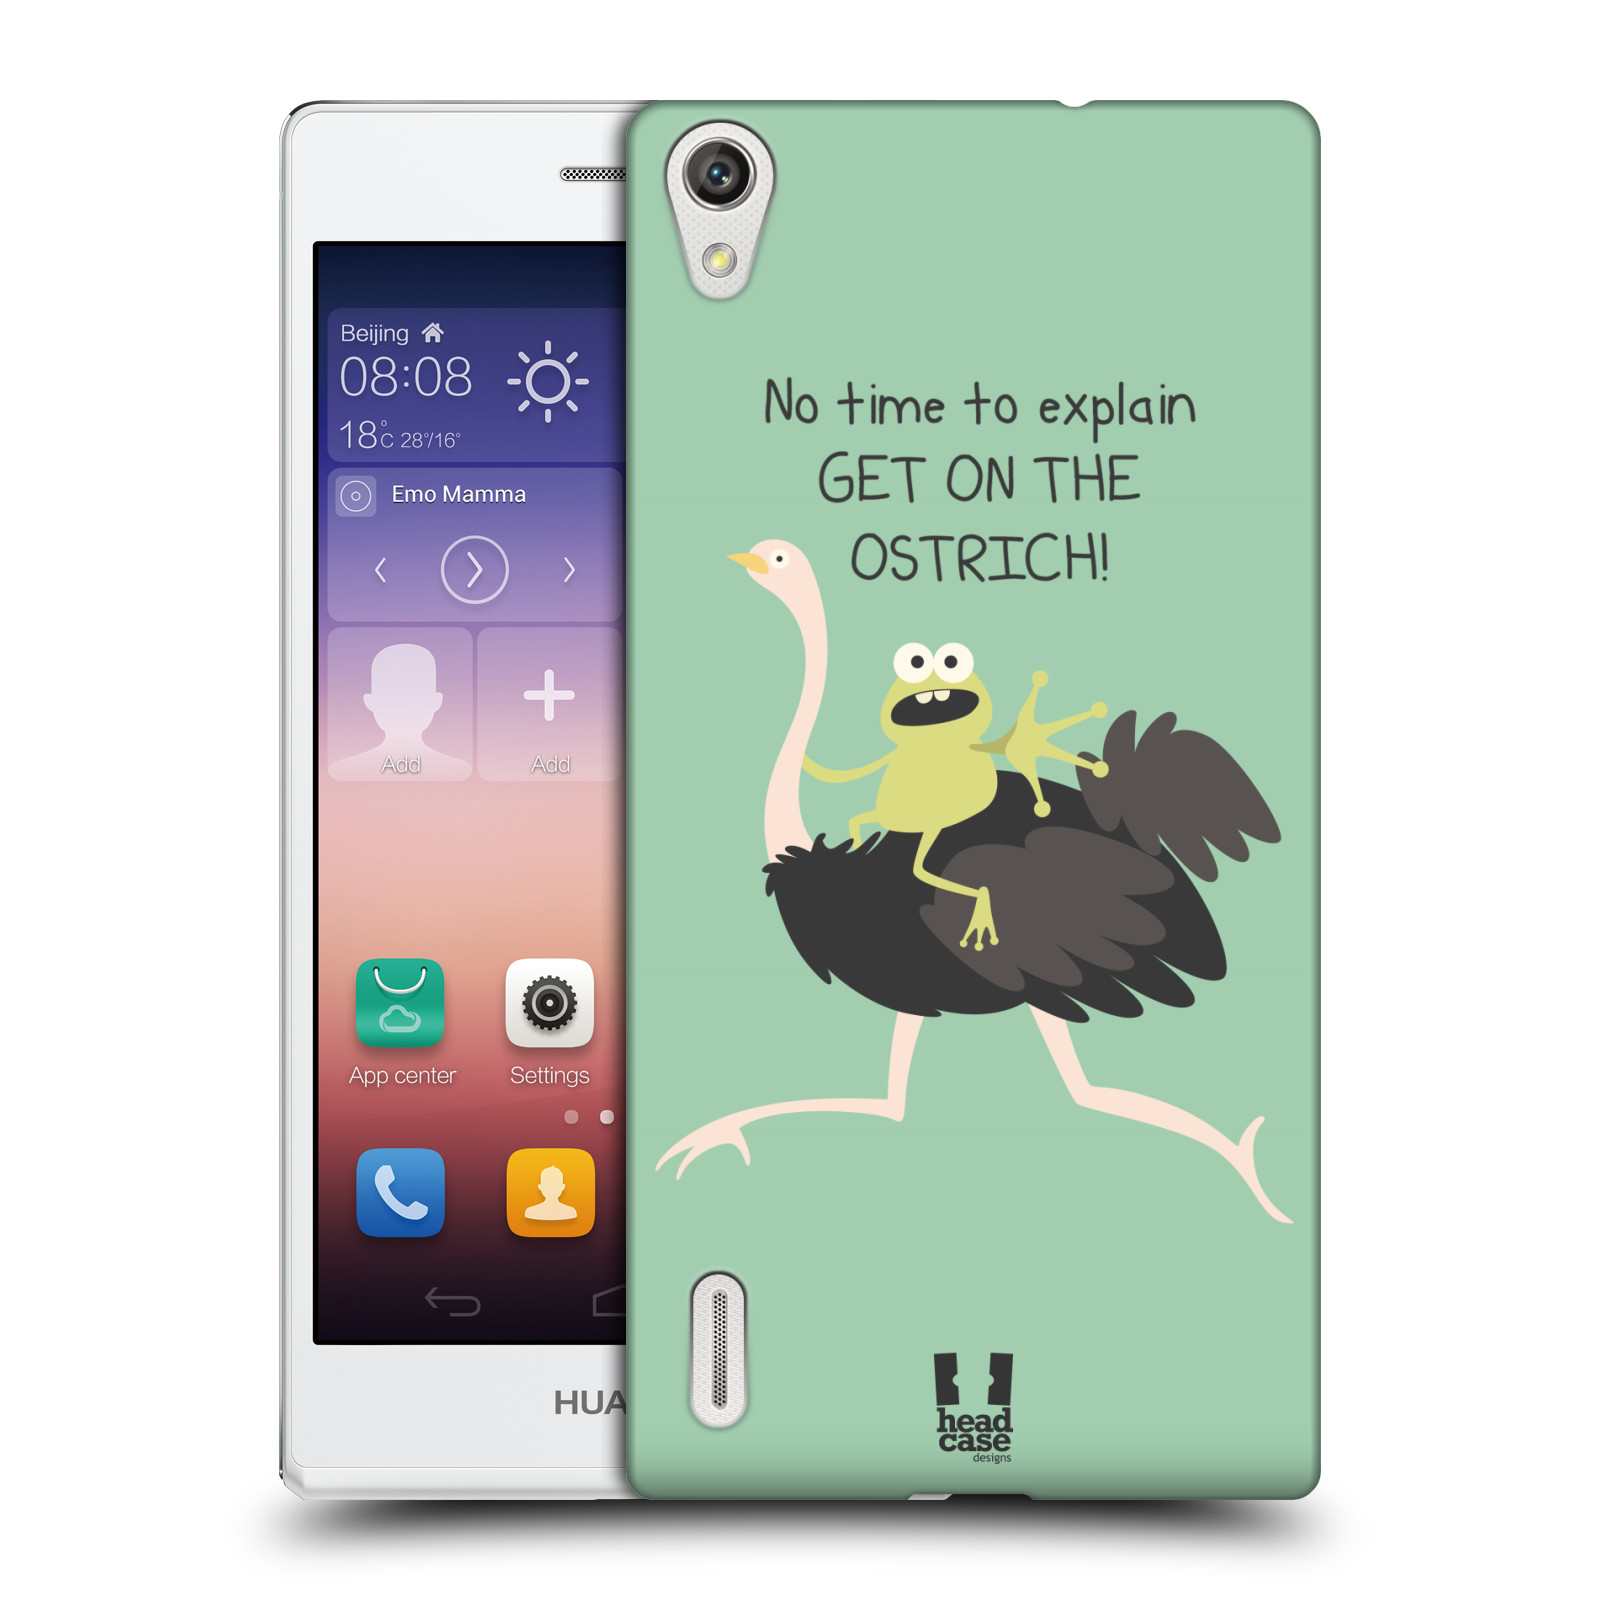 HEAD CASE DESIGNS DOSES OF NONSENSE CASE COVER FOR HUAWEI ASCEND P7 LTE